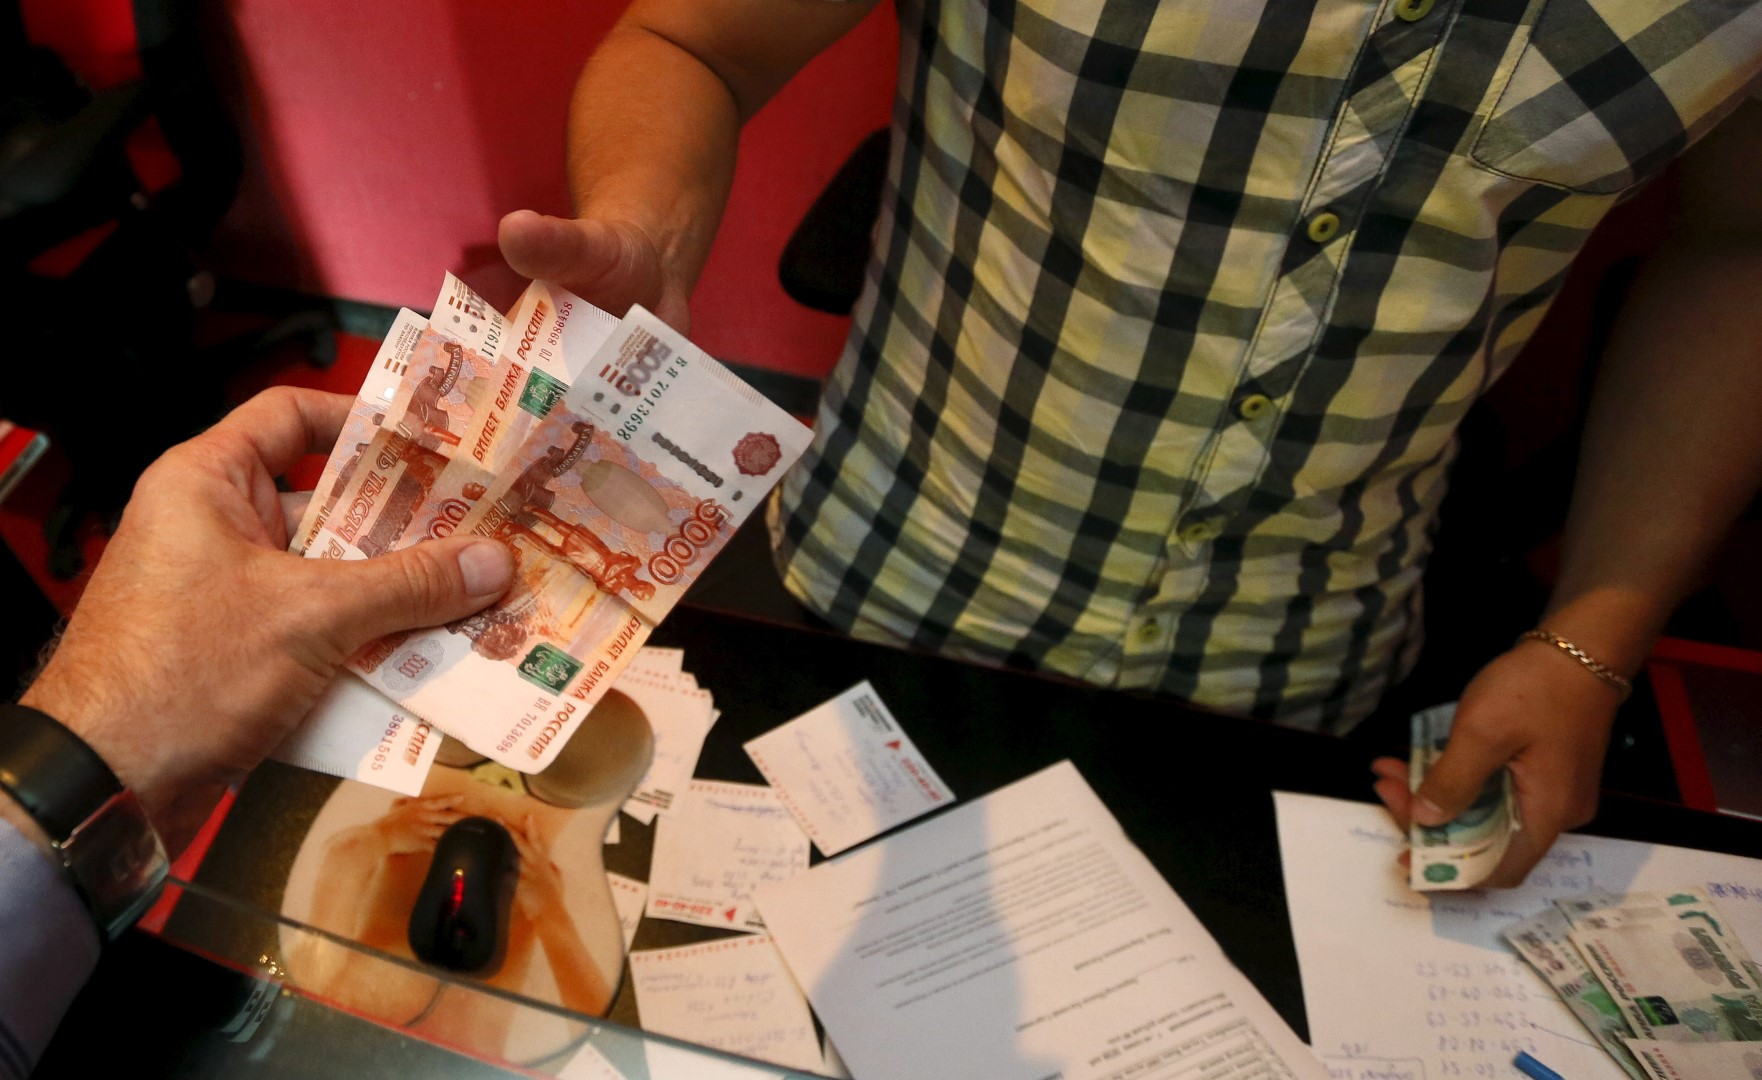 An employee (R) of a car service station takes Russian rouble banknotes from a client in the Siberian city of Krasnoyarsk, Russia, August 6, 2015. The Russian rouble fell on Thursday, continuing to reverse a recent rally after a renewed slide in the oil price below $50 a barrel. REUTERS/Ilya Naymushin - RTX1NBCU